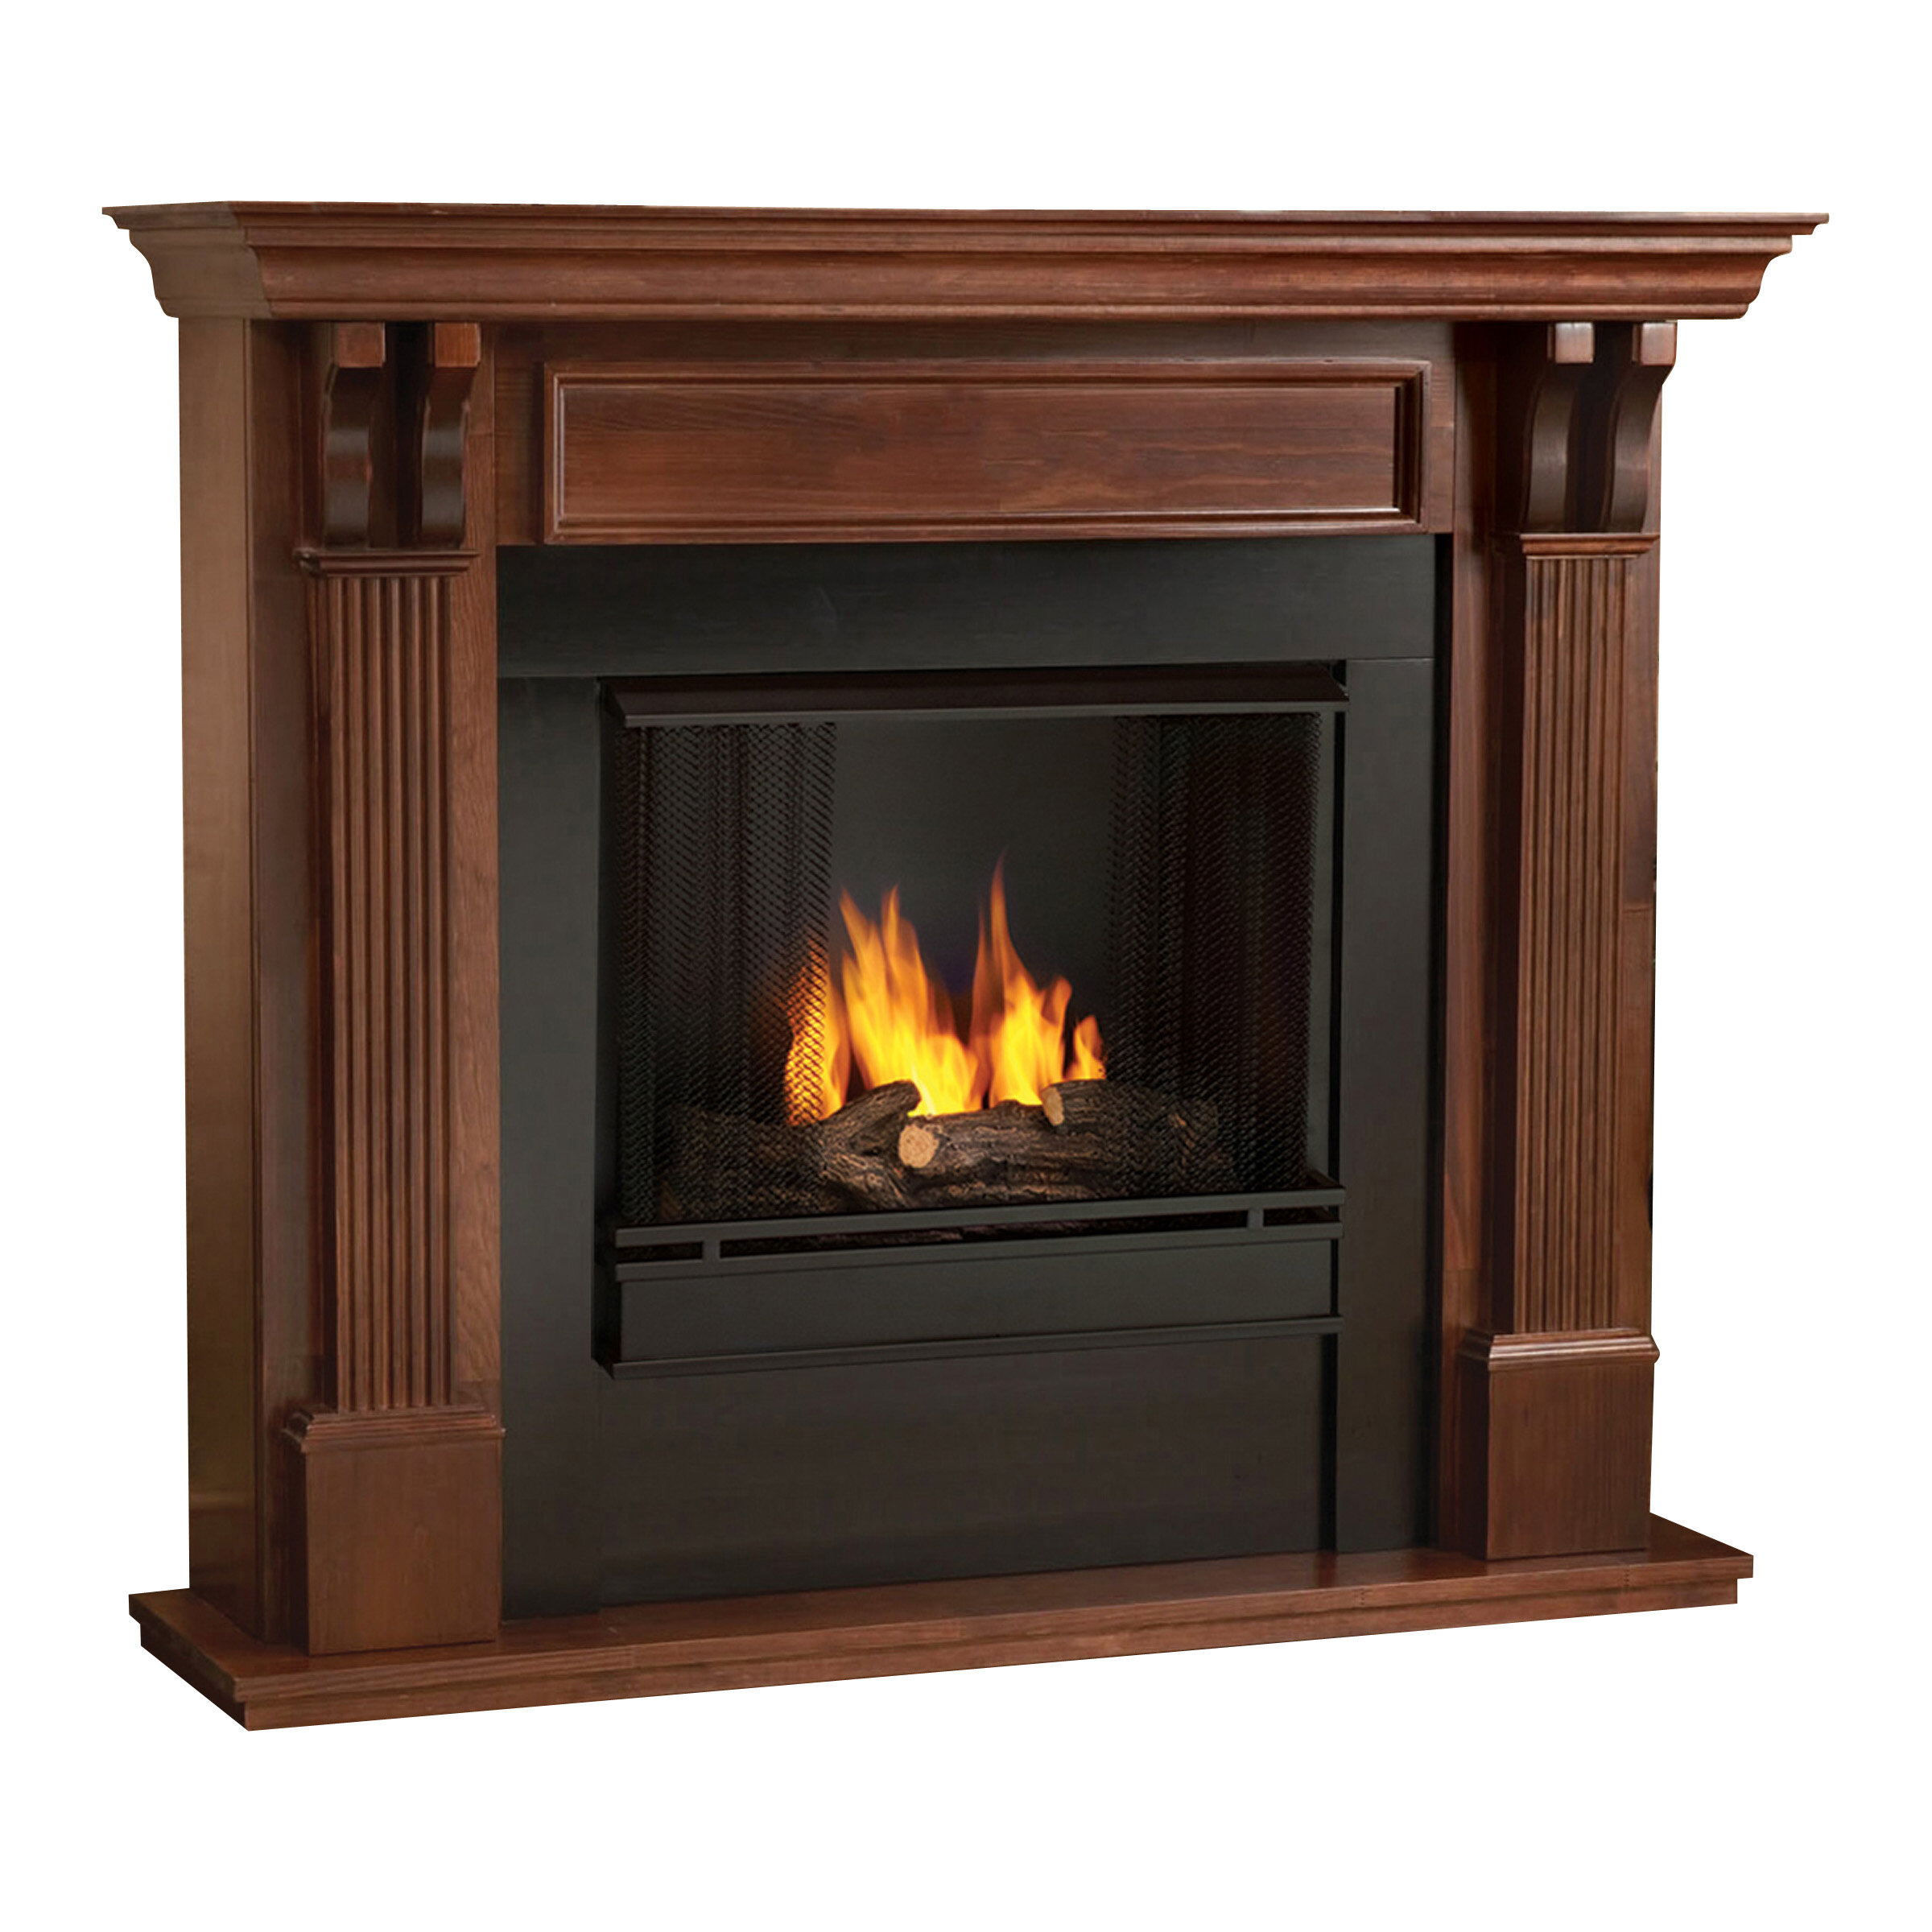 com check gel wall review at and amazon the offers out mount fuel complete price buying sei fireplace top solution ventless copper